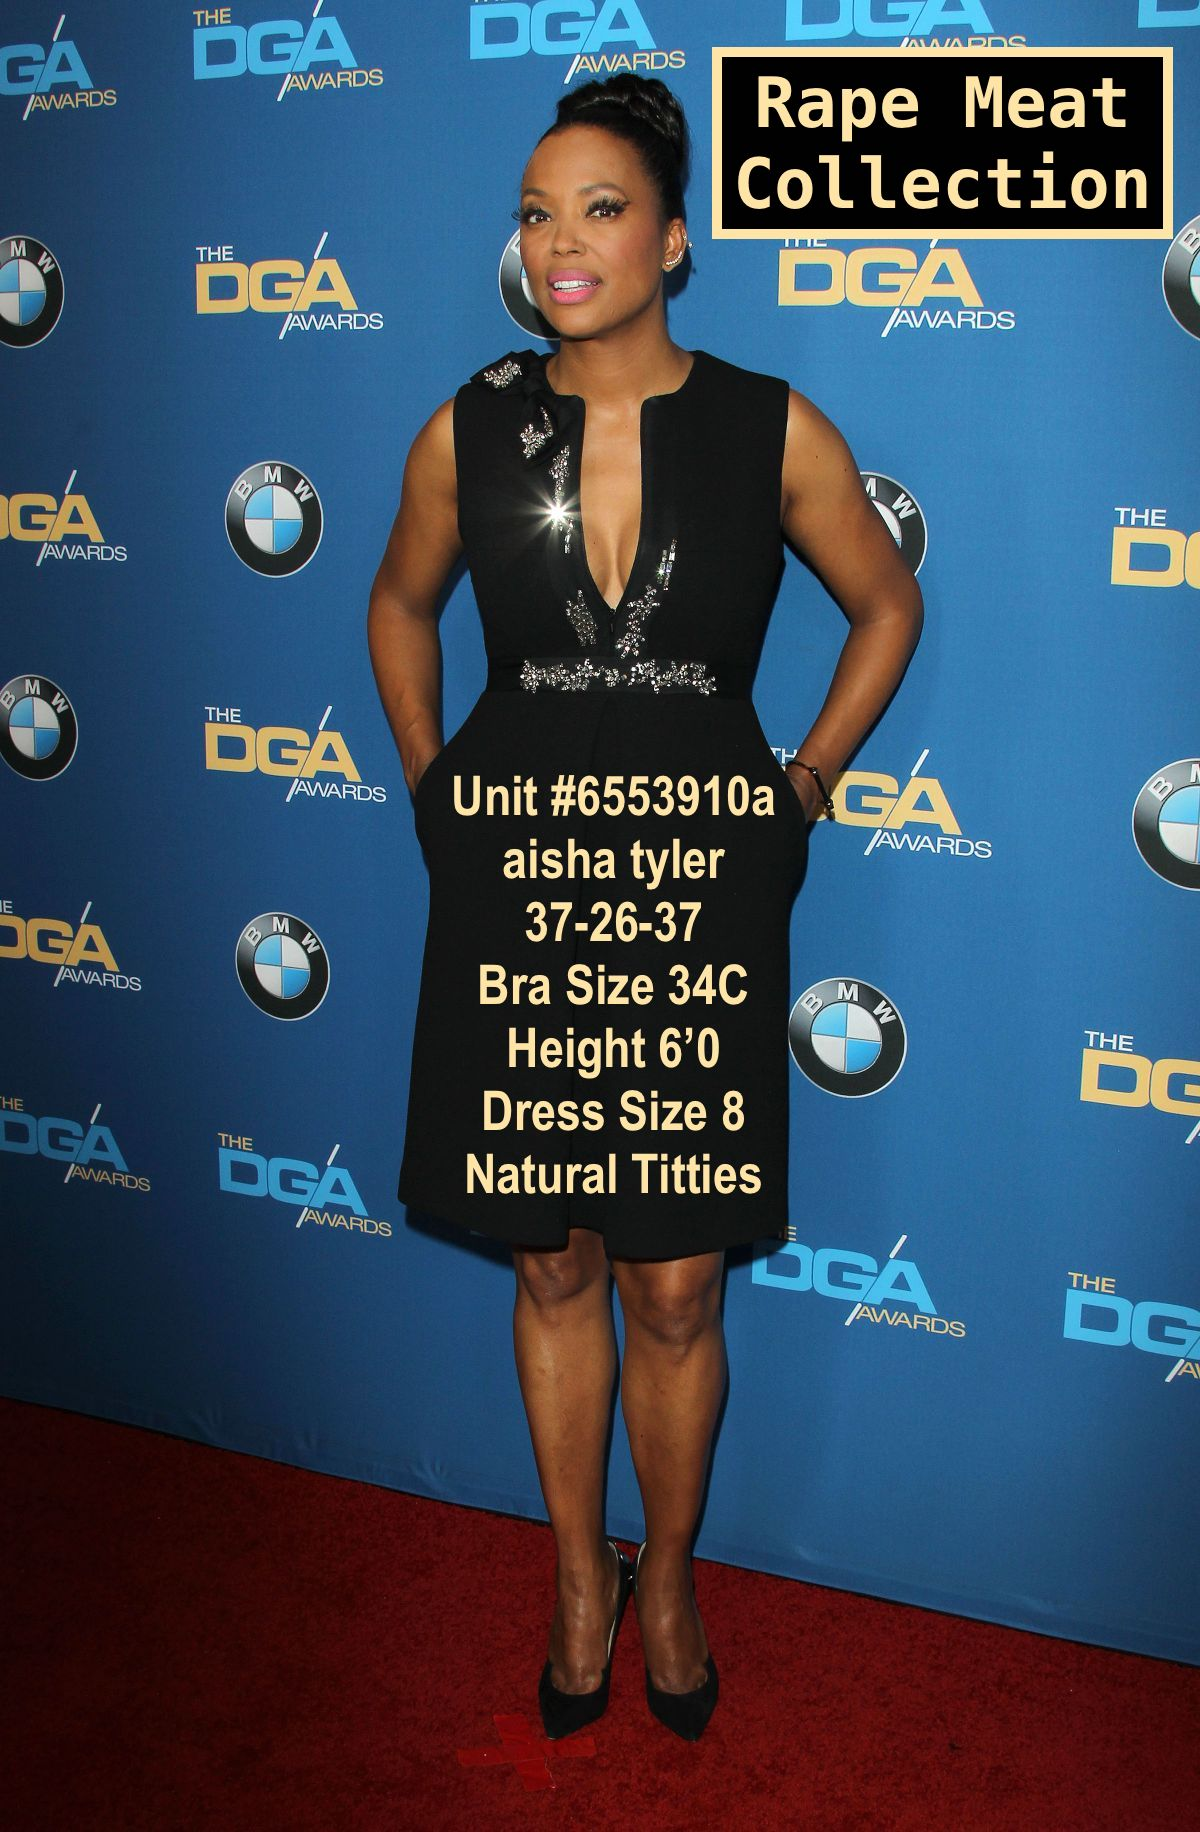 _aisha-tyler-at-69th-annual-directors-guild-of-america-awards-in-beverly-hills-02-04-2017_3.jpg